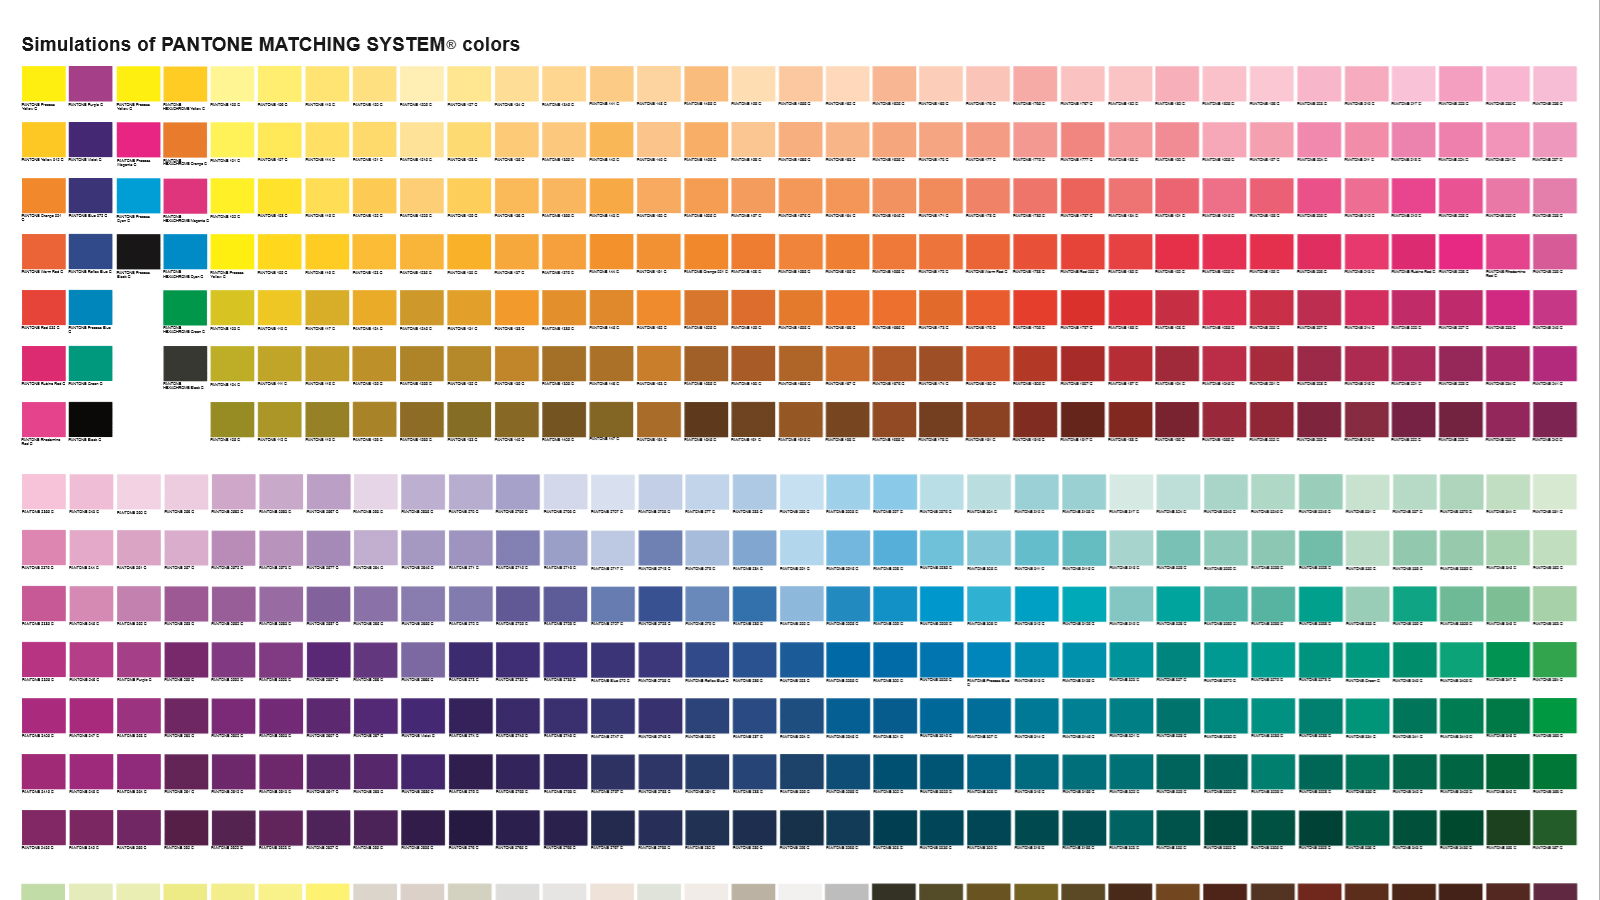 Pantone for Paleta de colores pintura